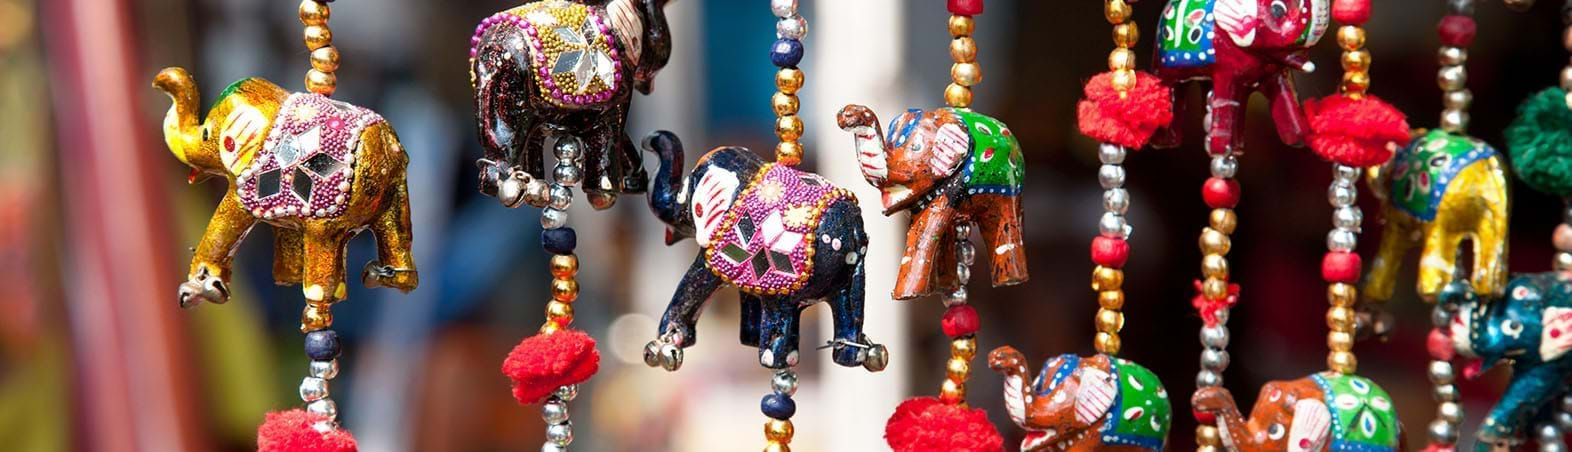 Visit Urban Haat in Navi Mumbai for Amazing Crafts, Food and More